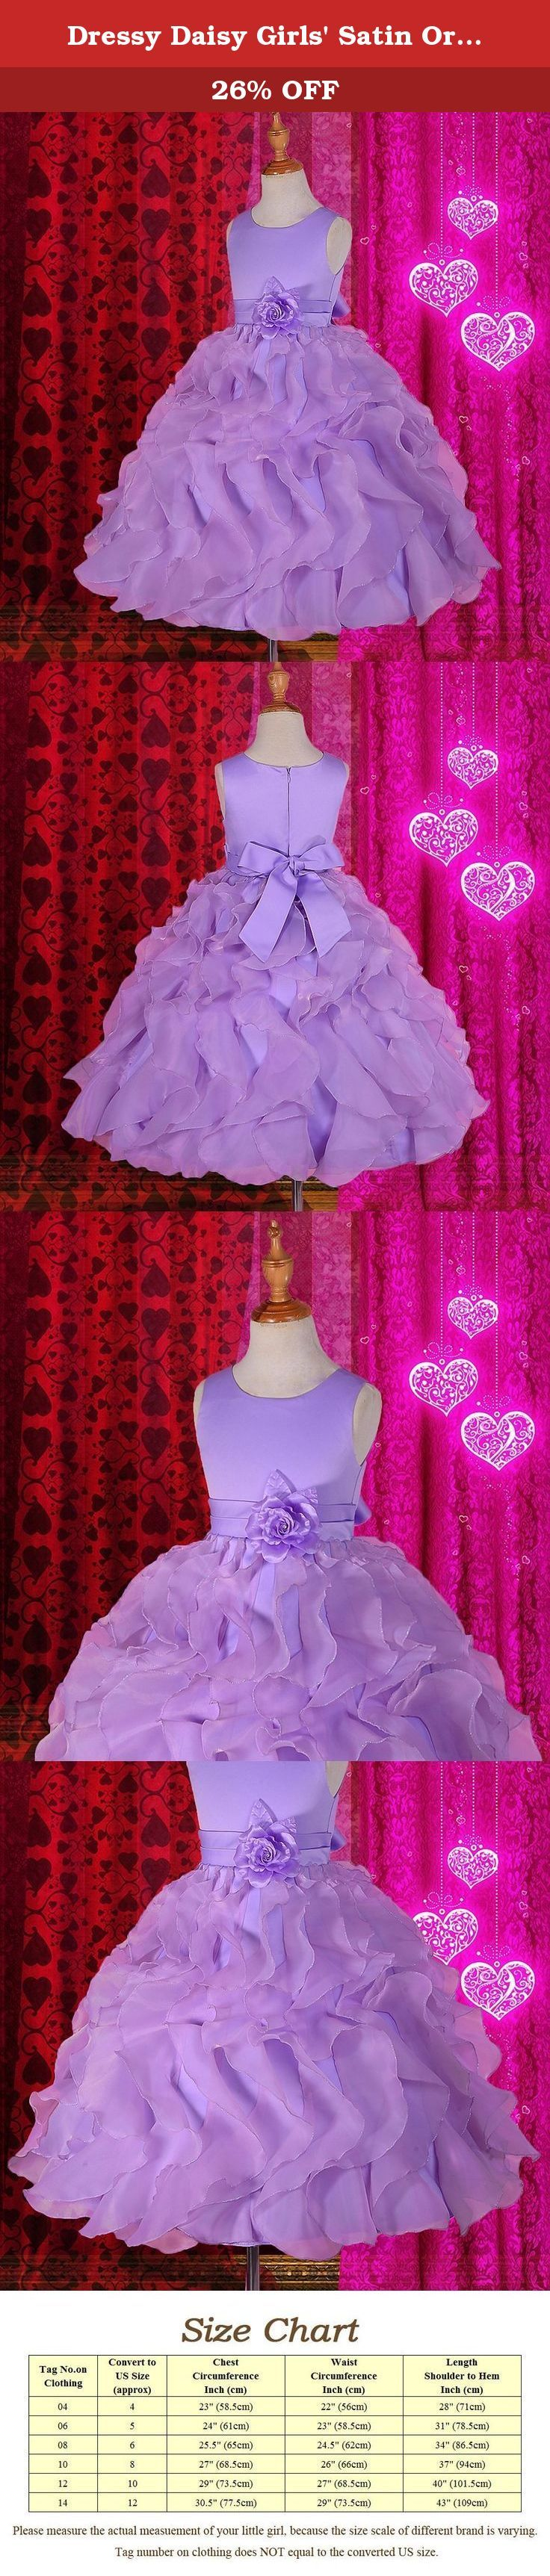 Dressy Daisy Girls' Satin Organza Ruffle Flower Girl Dresses Pageant Gown Party Occasion Dress Size 10 Purple. ** Extra petticoat used in pictures ** It is great for any occasion such as wedding, party, birthday, holiday, and other special events. You and your little princess will love this dress. For the shipments fulfilled by seller, it takes 8-12 working days to deliver. For those buyers who are outside USA, it may takes a little longer time. We offer expedited delivery service as…